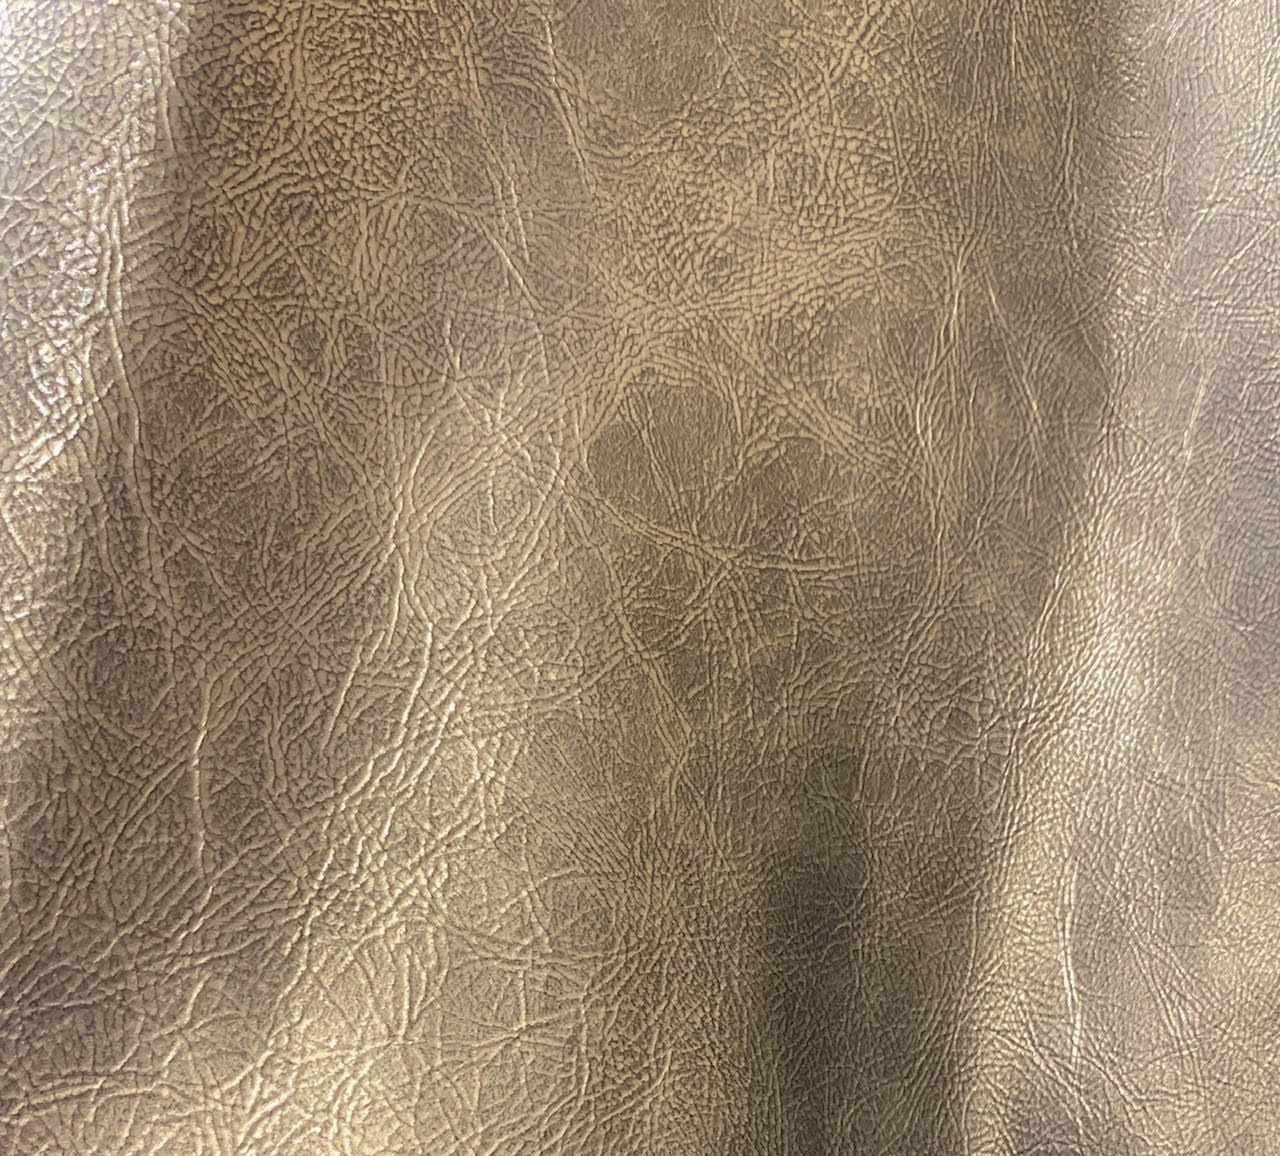 Luster Distressed Antique Gold